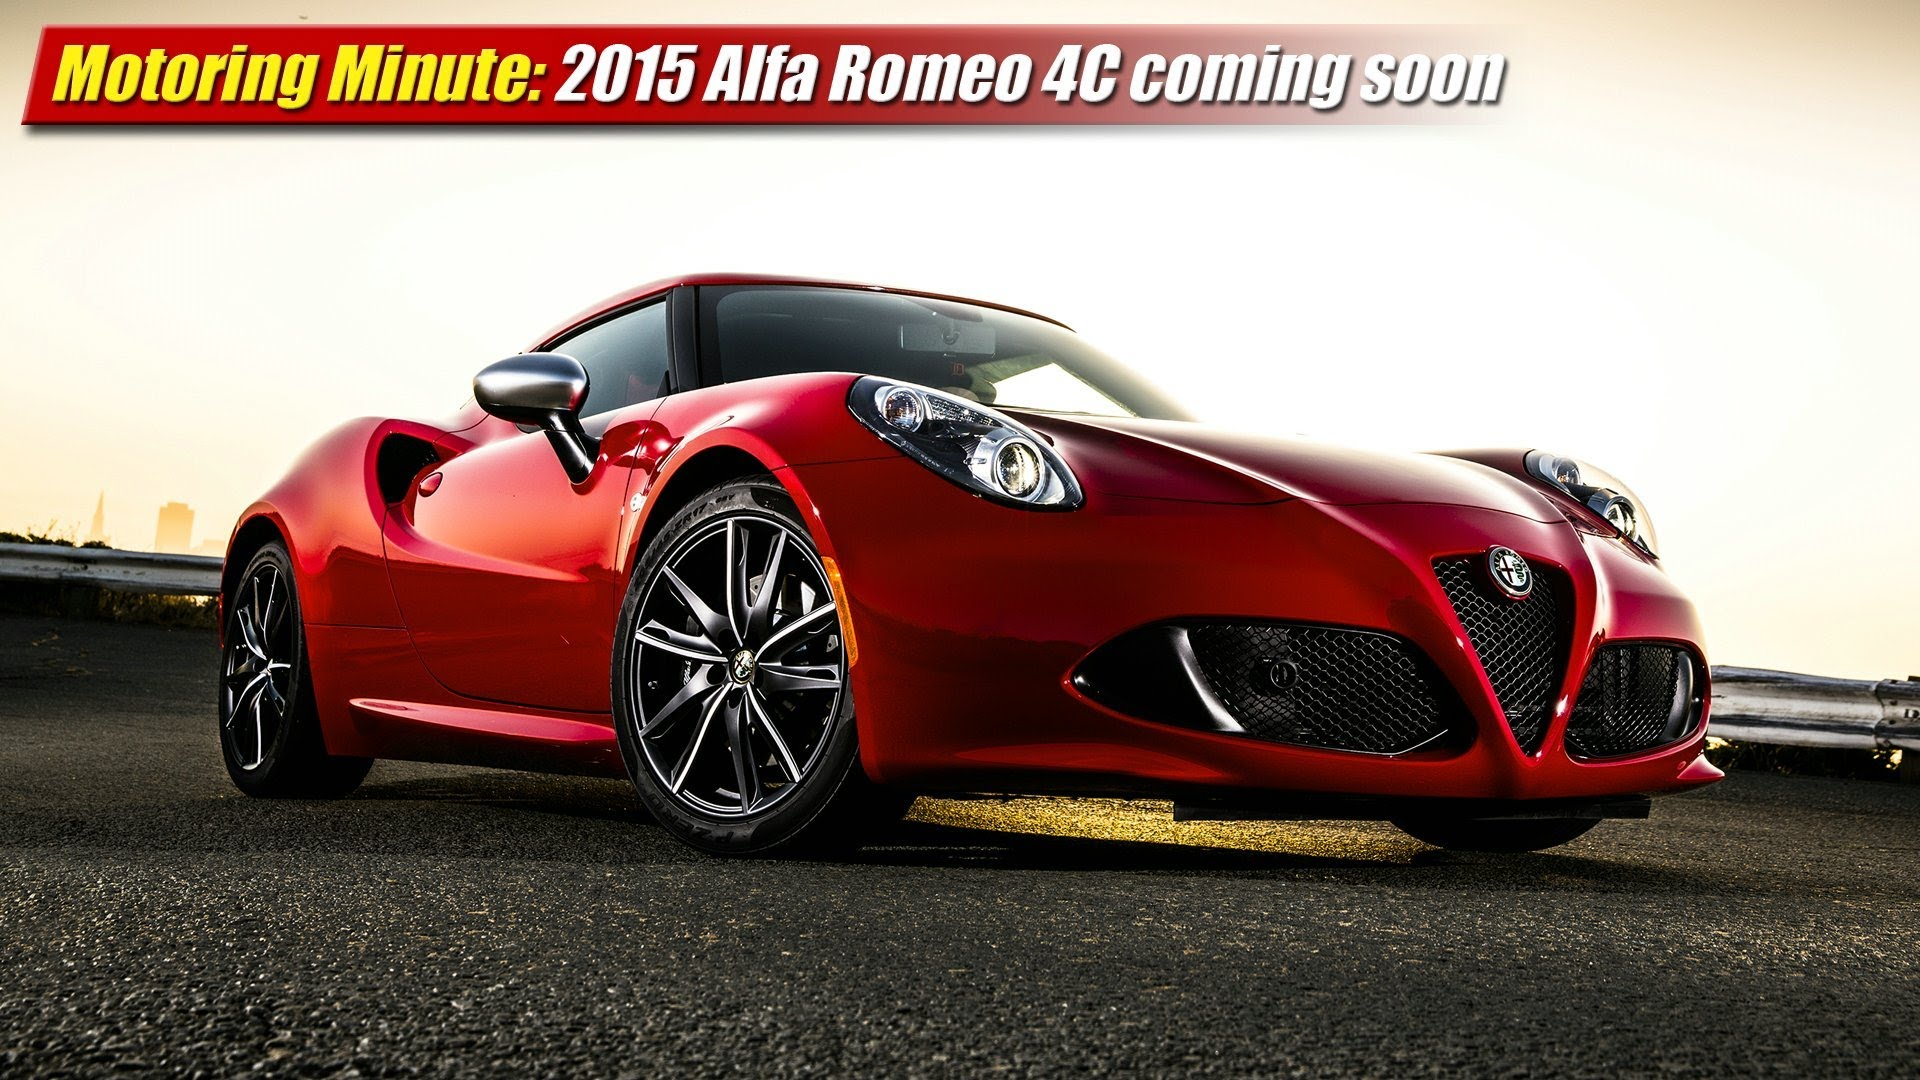 Motoring Minute: 2015 Alfa Romeo 4C coming soon